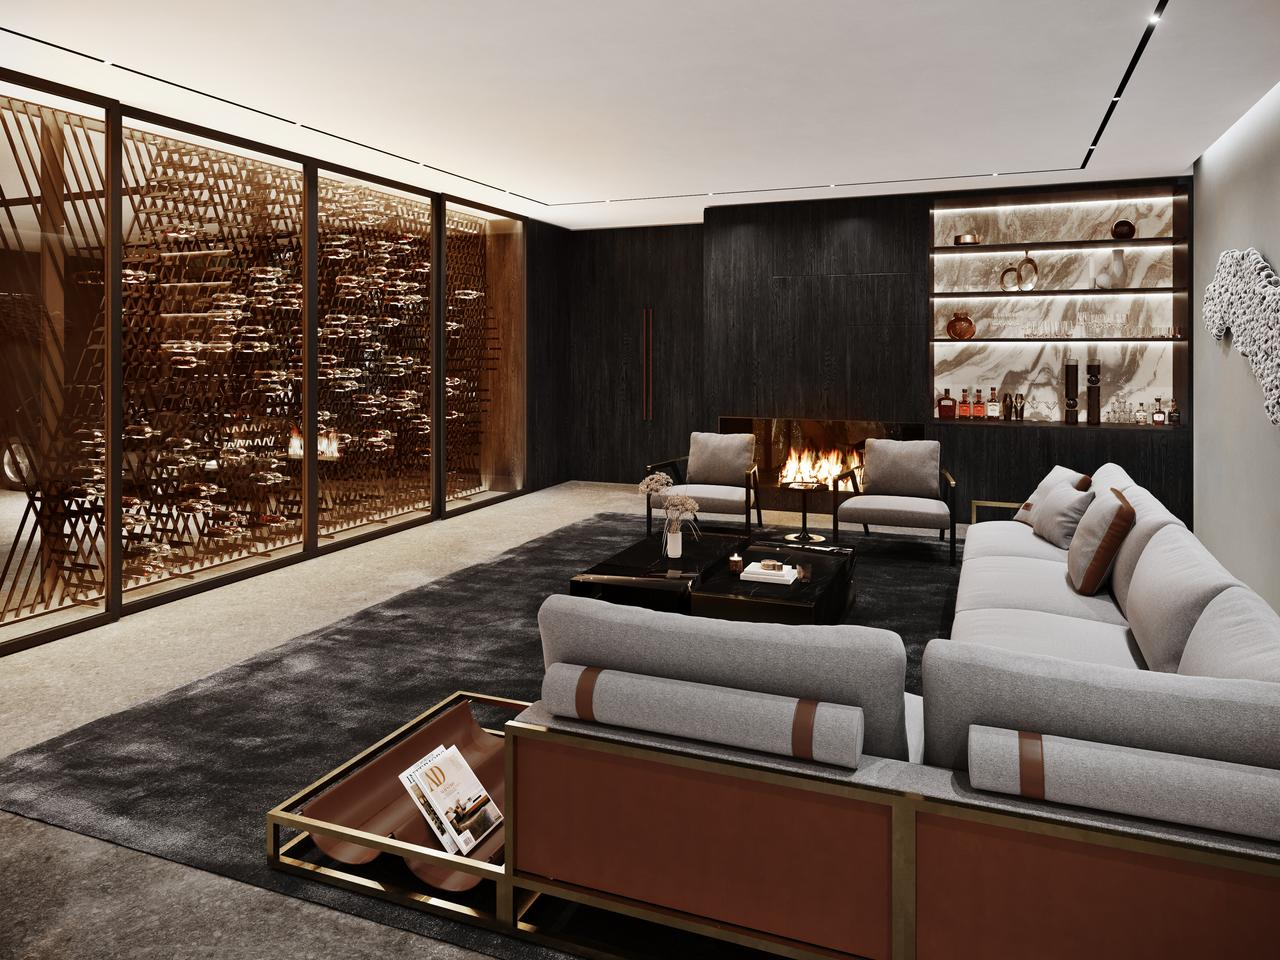 Sylvan Rock will feature a cosy lounge area with a bar and a custom wine cellar that references Aston Martin with a cross-hatched lattice design